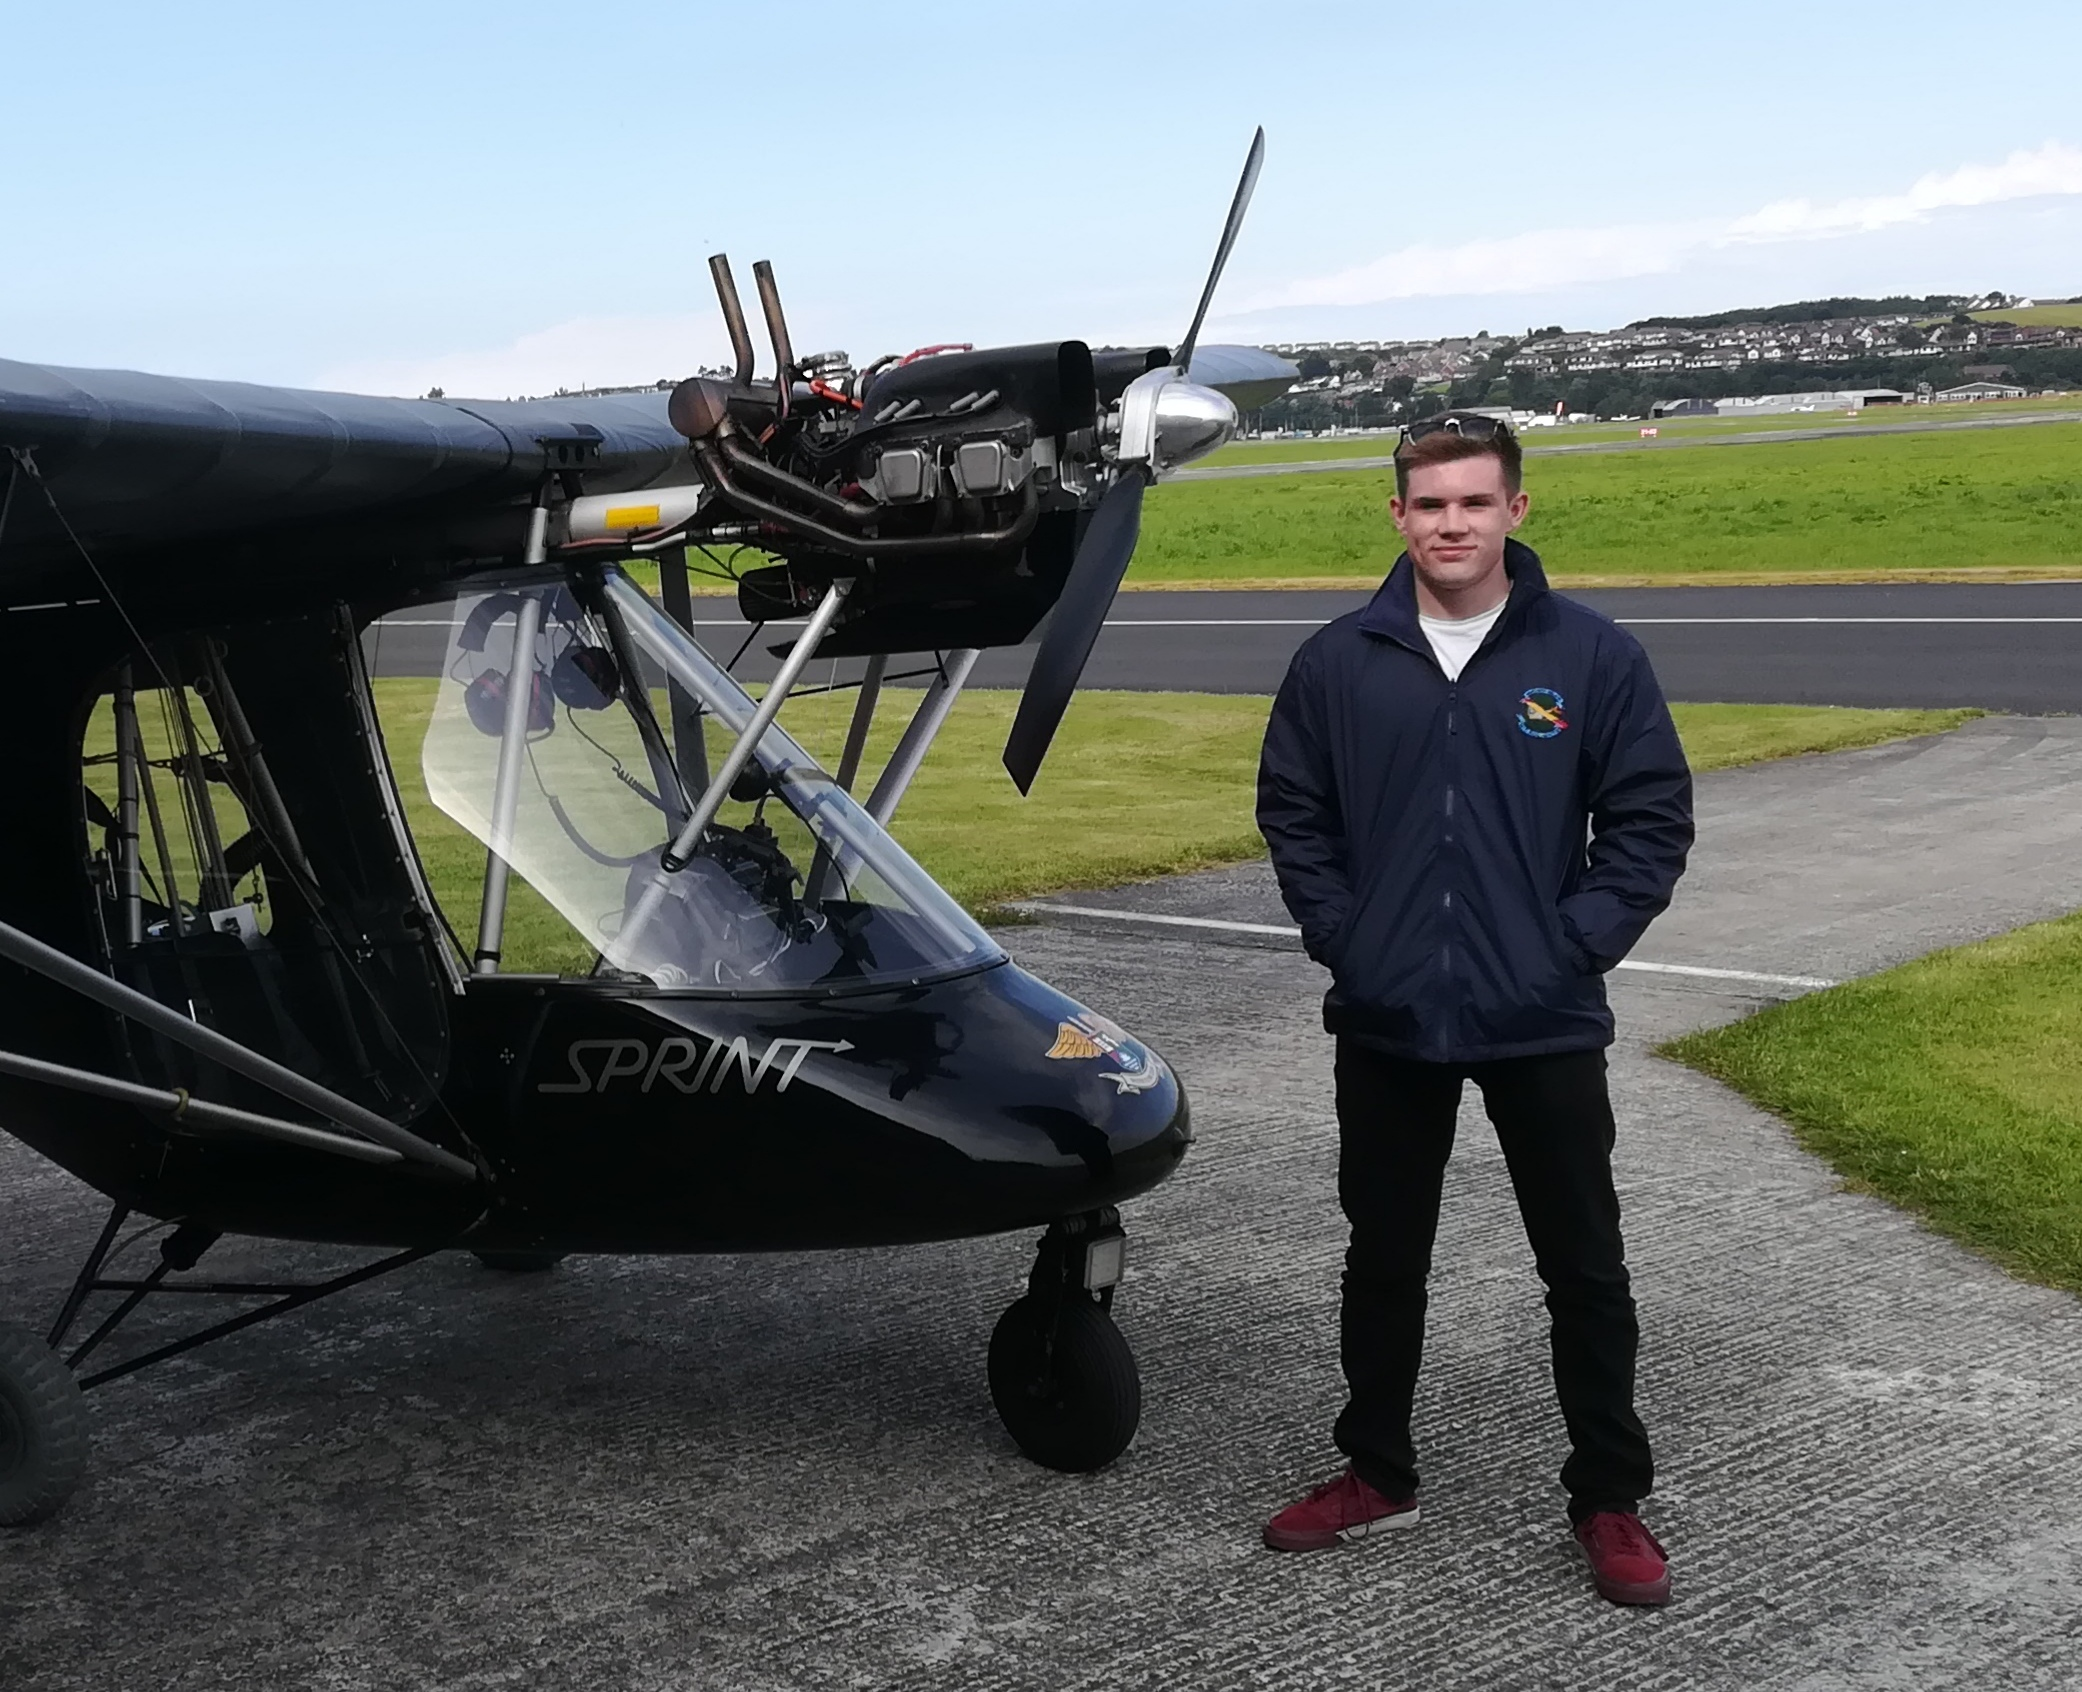 BMAA bursary results in Tom Martin getting his Pilot's License